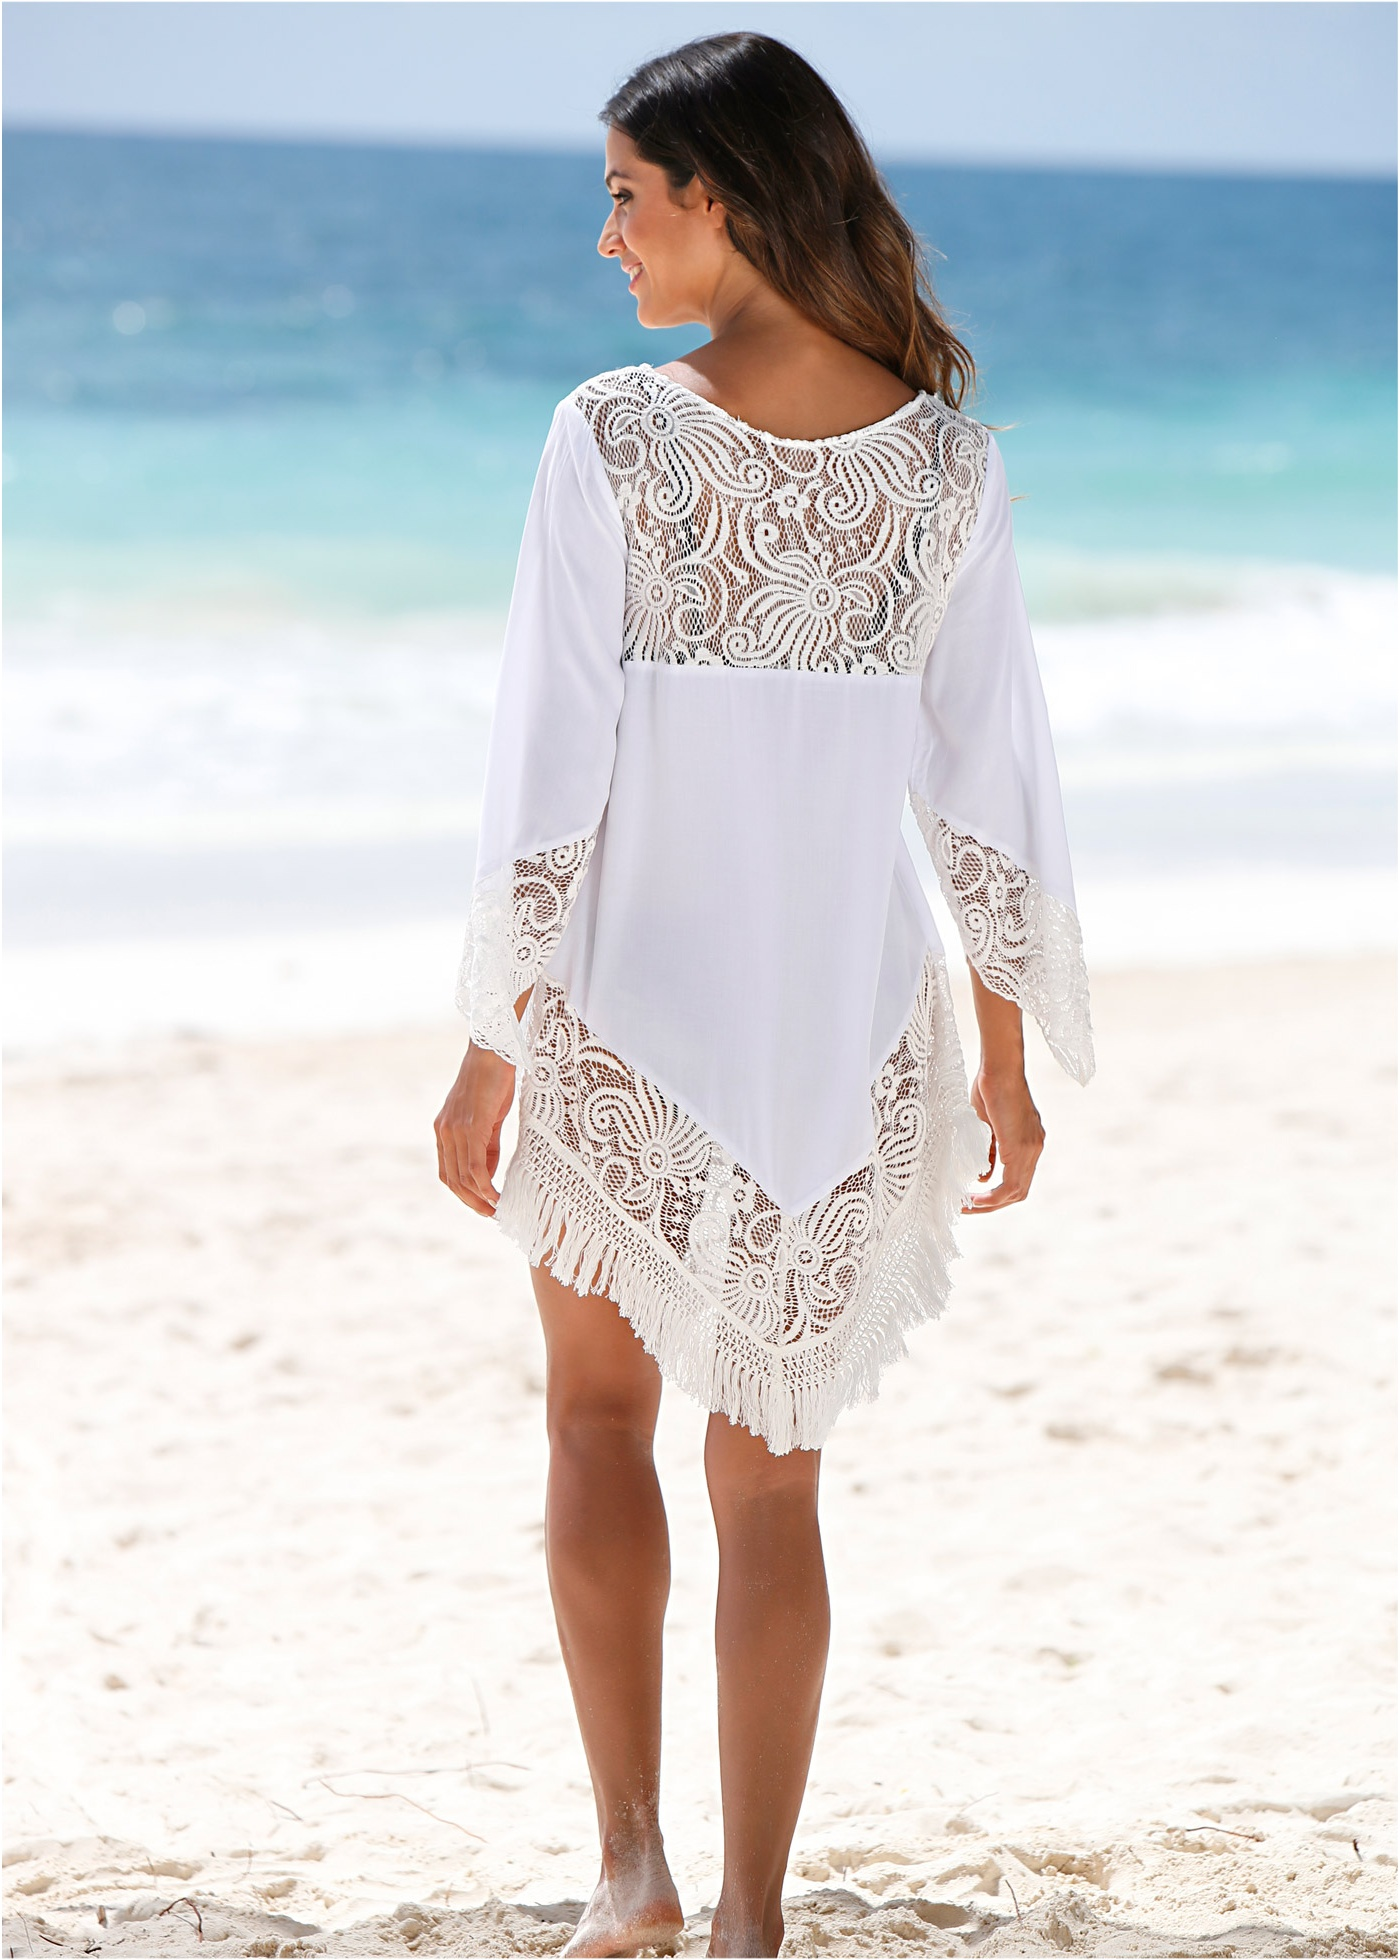 The Summer Cover-Up You Need In Your Wardrobe